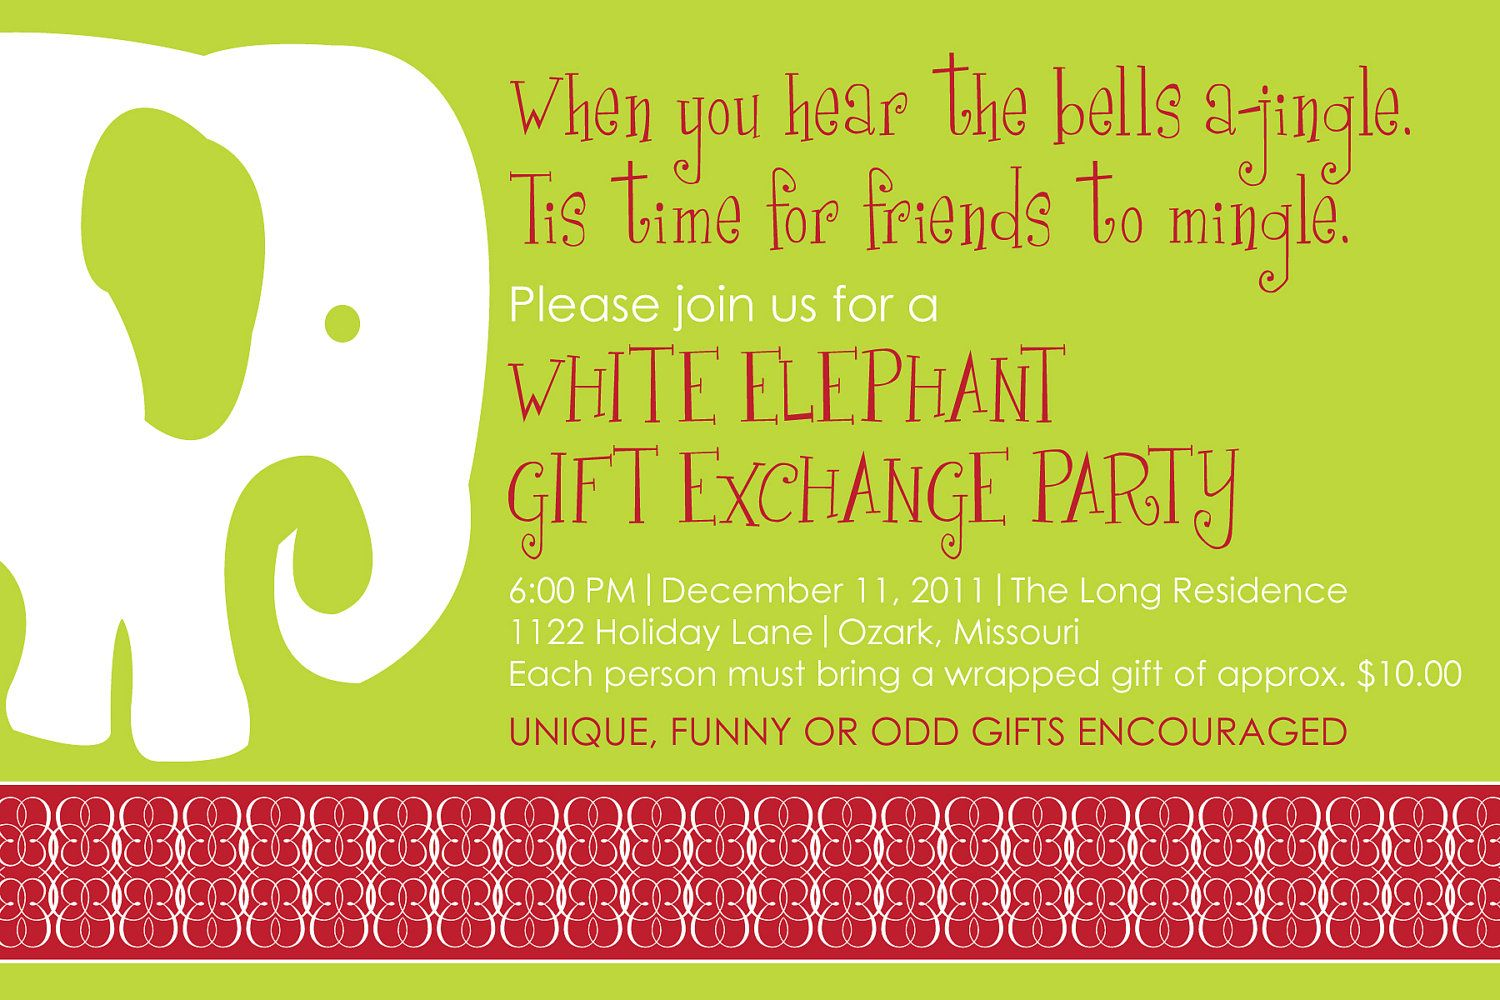 17 best images about white elephant christmas ideas on pinterest, Party invitations